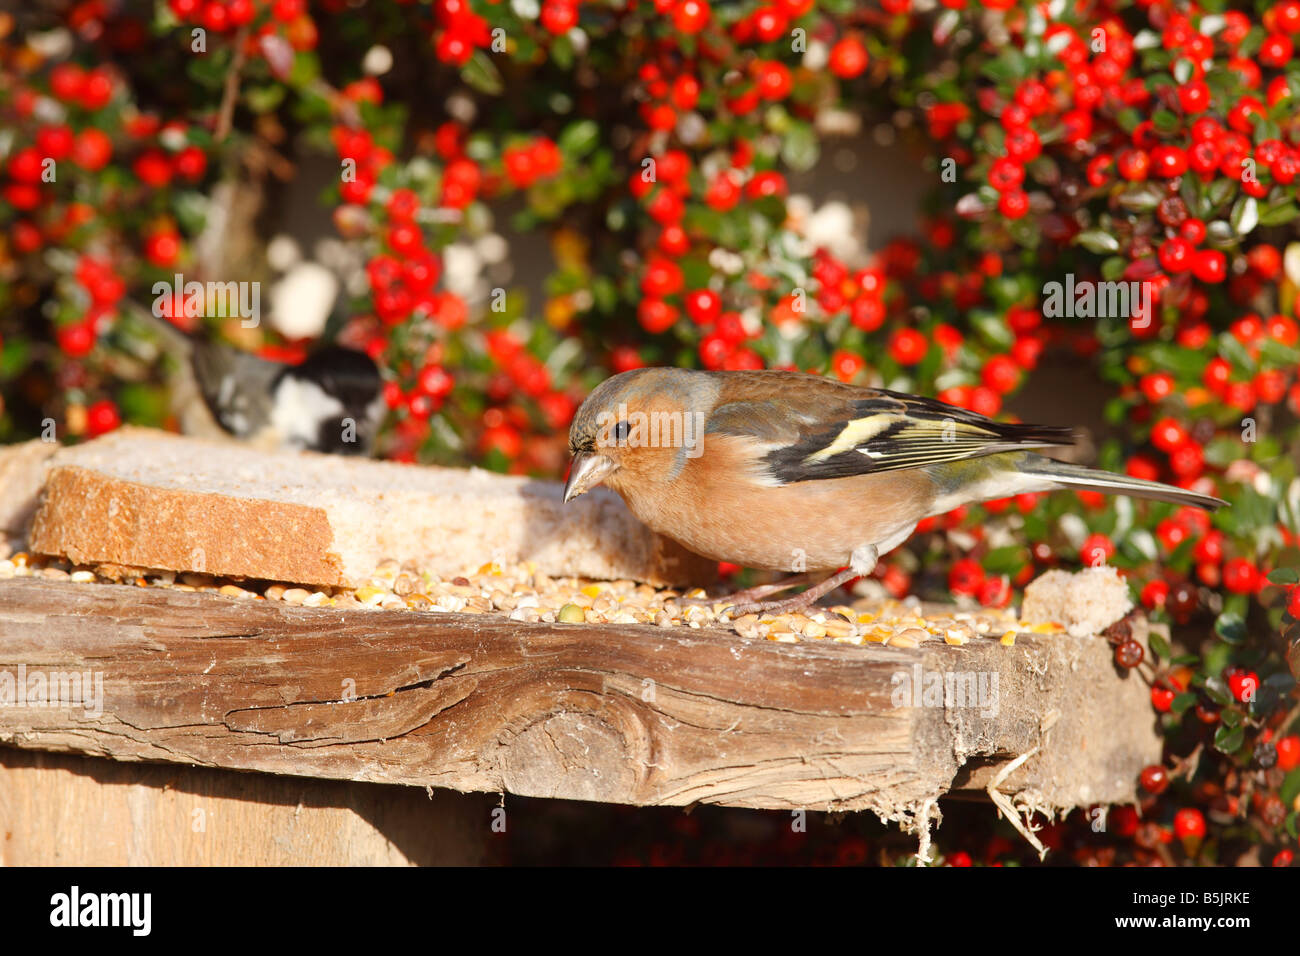 CHAFFINCH Fringilla coelebs MALE ON BIRD TABLE - Stock Image